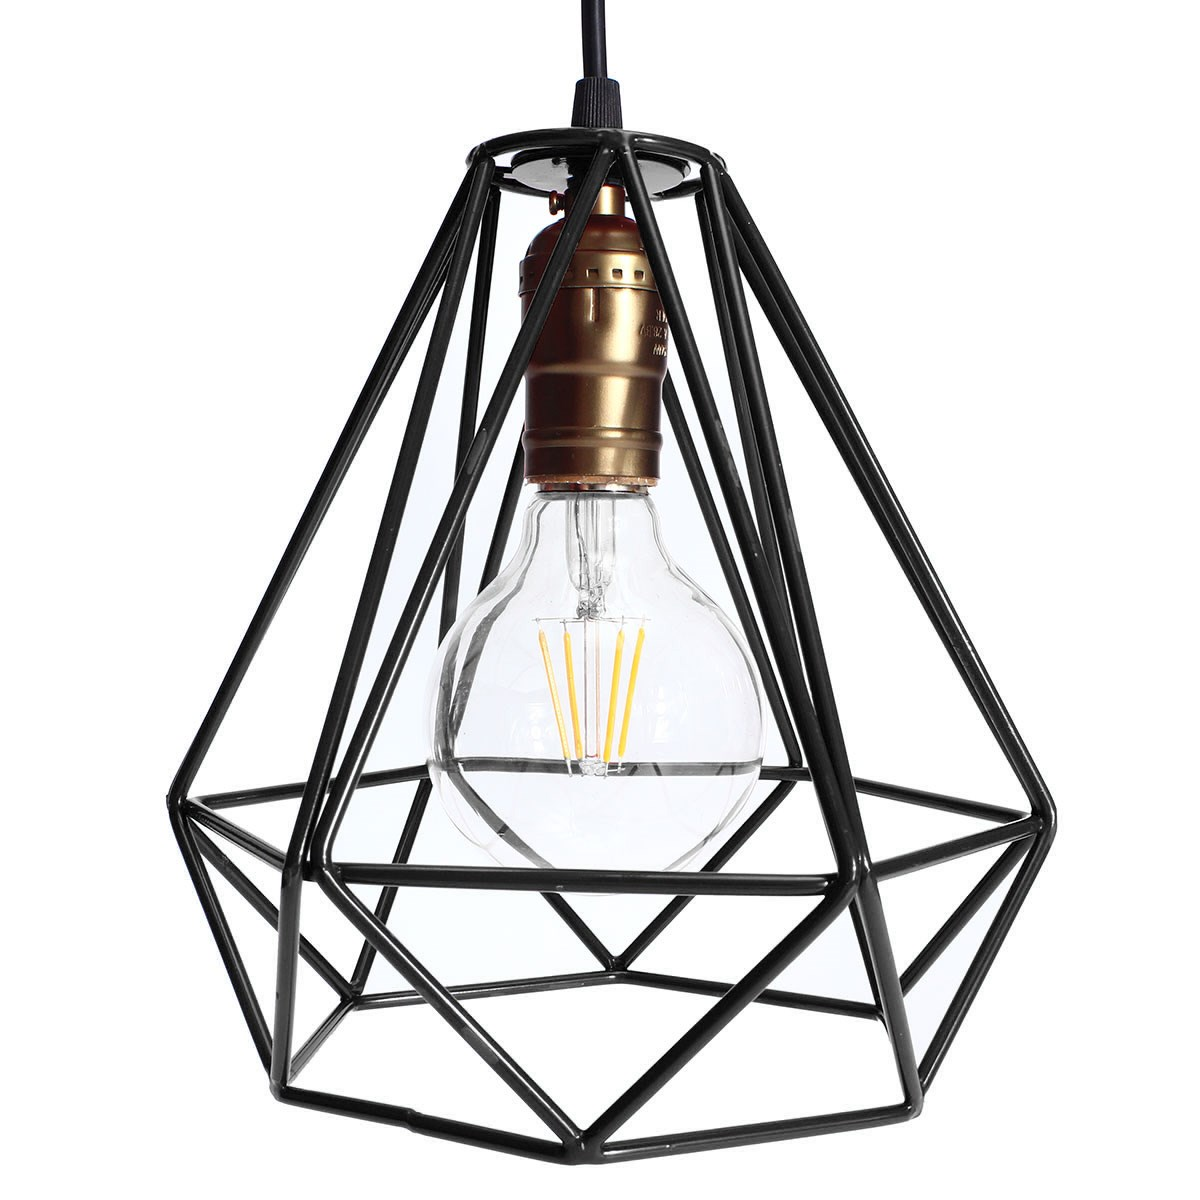 Wire Frame Ceiling Light Center Installing A Fan With Wiring Aliexpress Com Buy Lampshade Modern Lamp Cover Loft Industrial Rh 3 Way Switch Kit Black Has Red